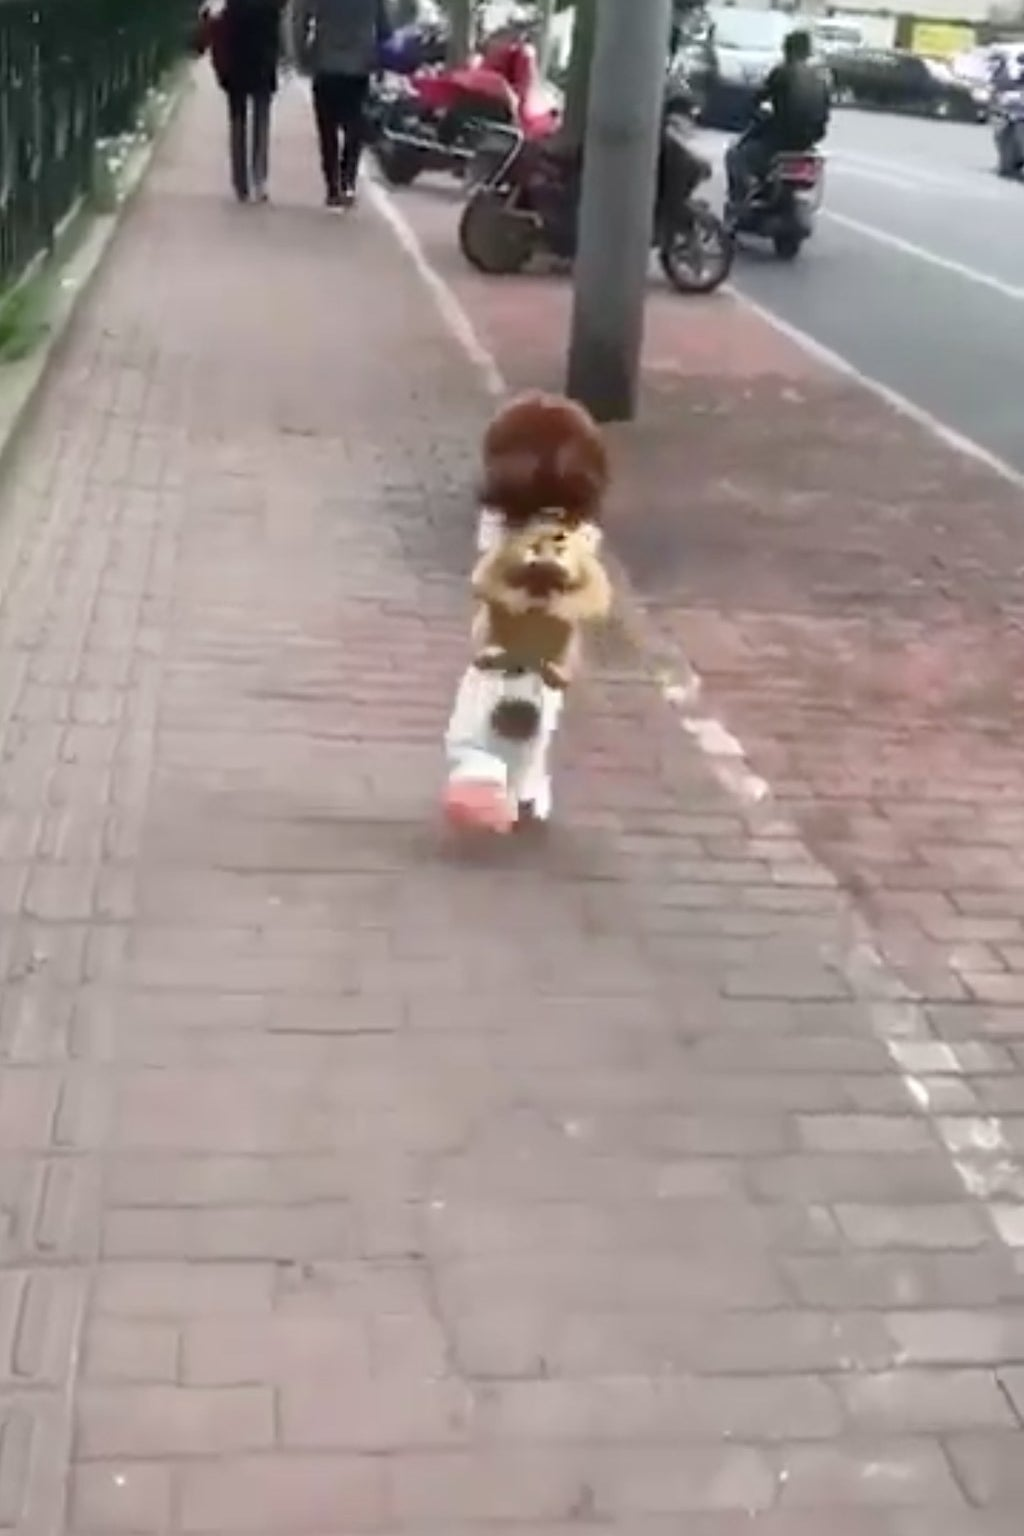 Dog Walking Like A Person China Wanghong